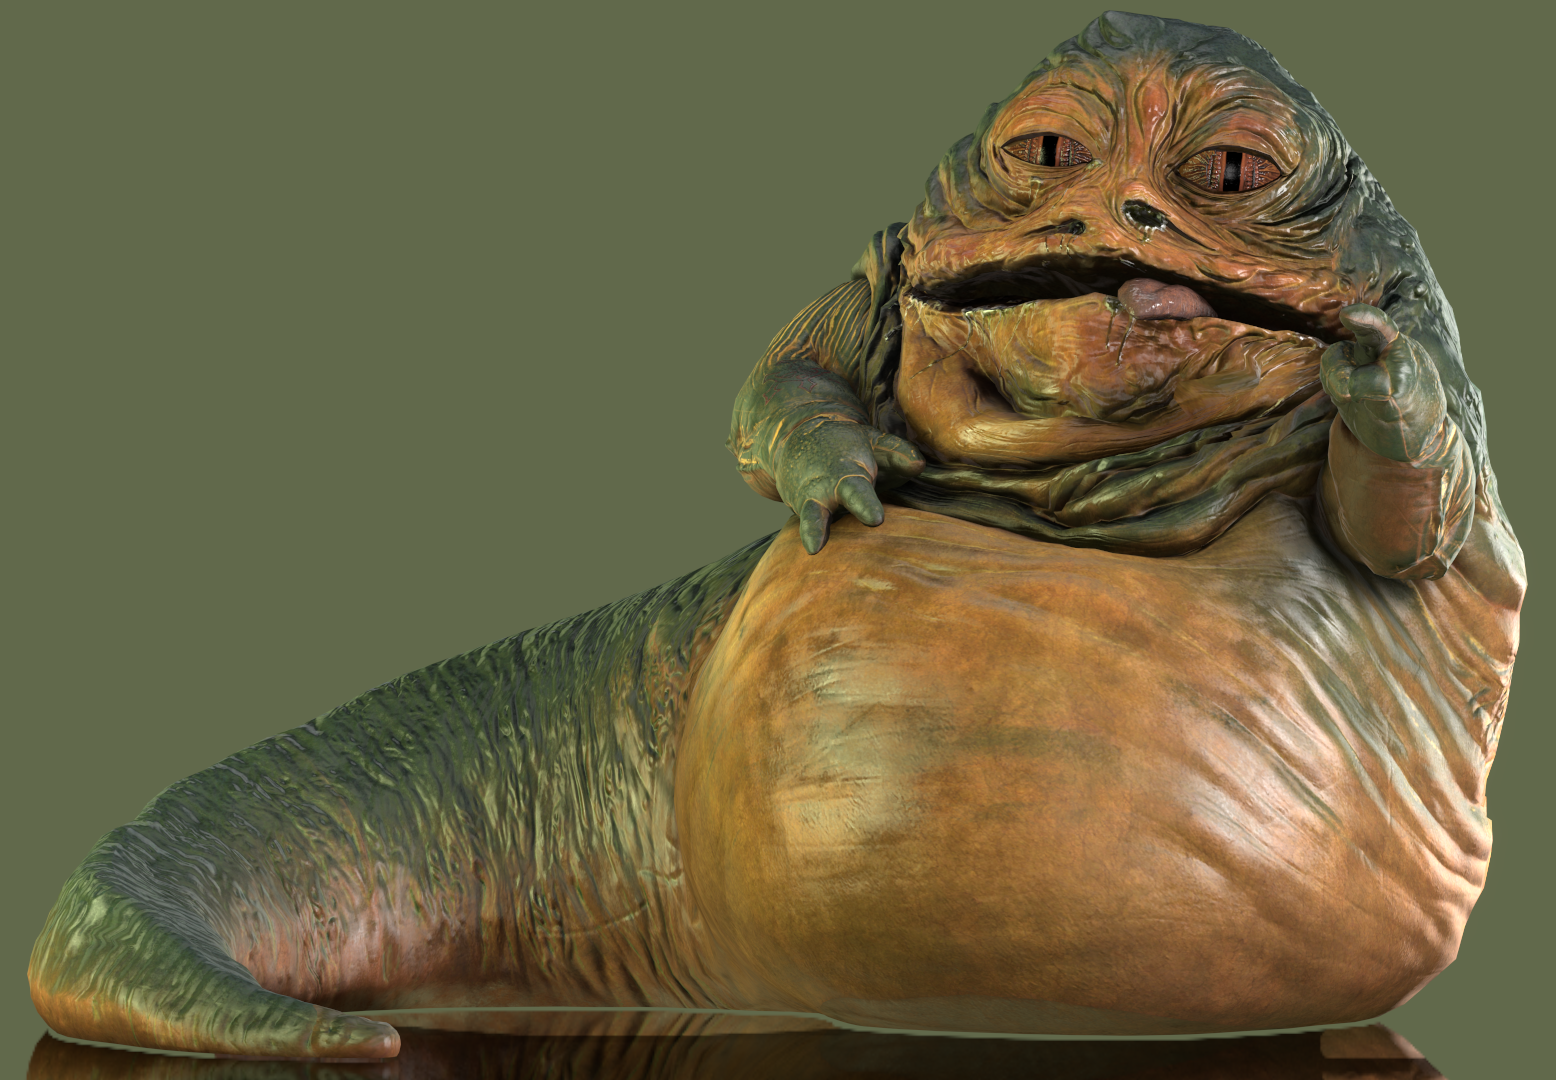 Jabba The Hutt By Yare Yare Dong Jabba The Hutt The Hutt Lion Sculpture